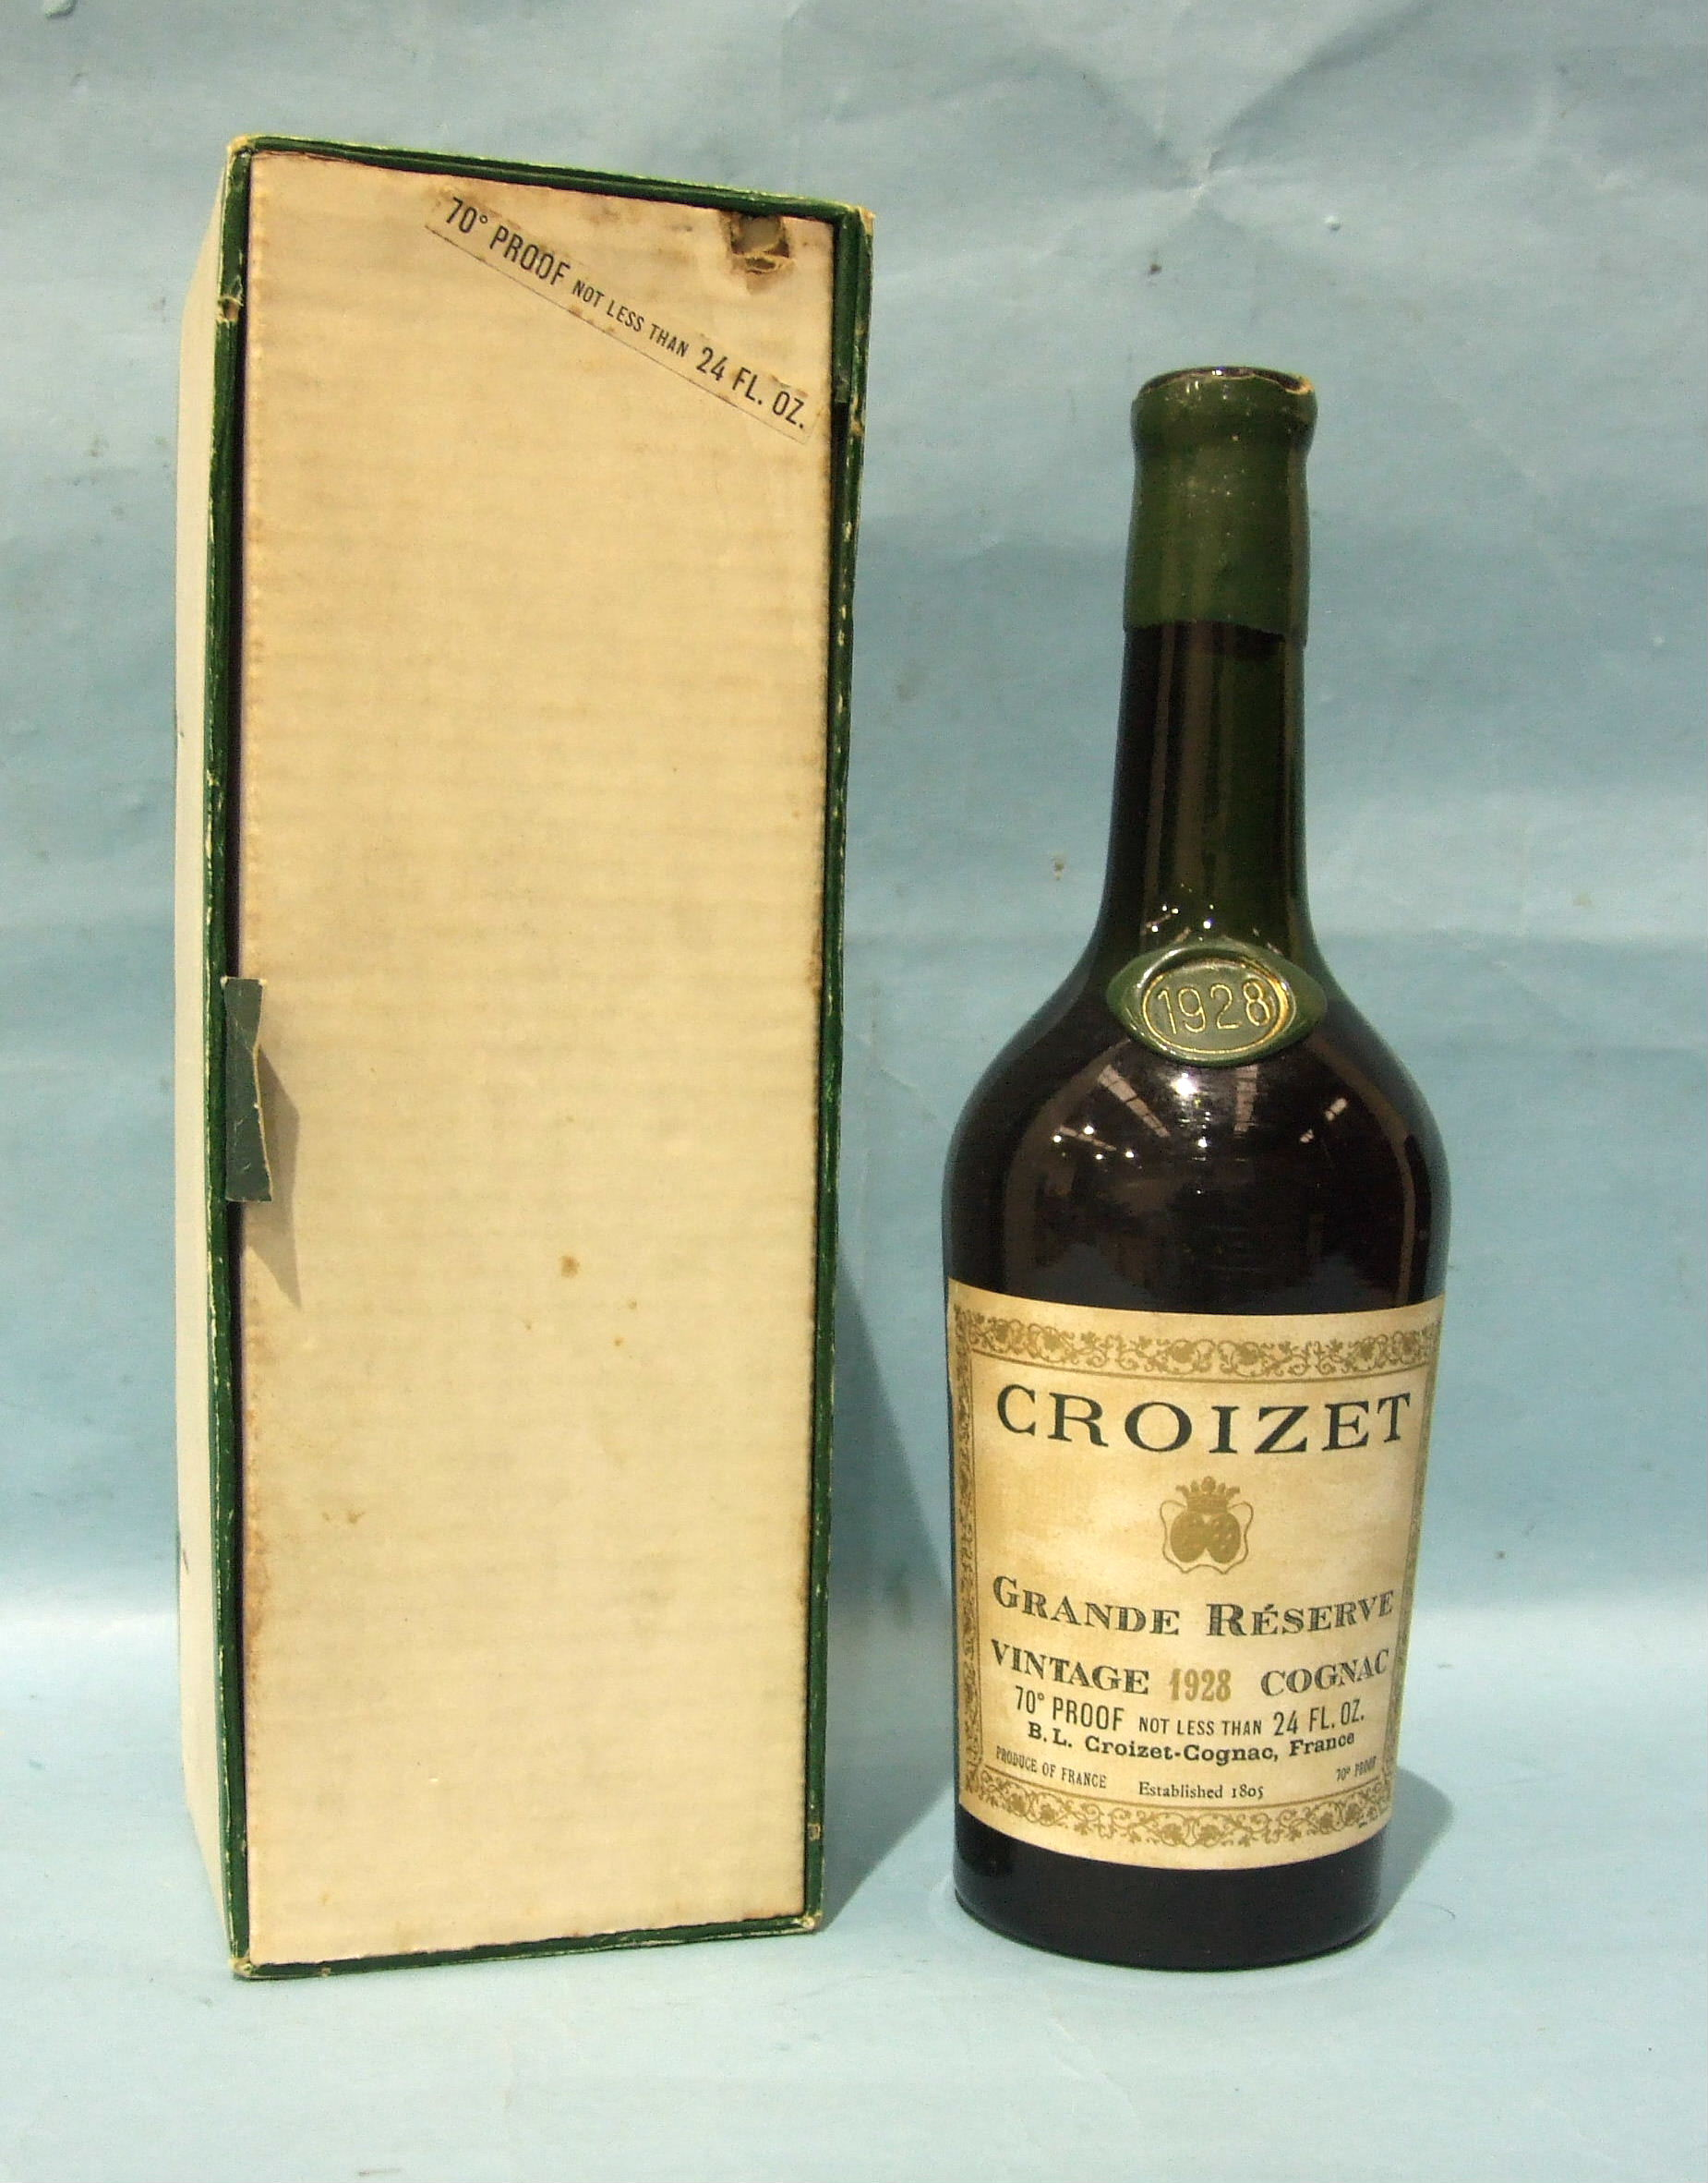 Lot 47 - Croizet Grande Reserve Vintage 1928 Cognac, wax capsule damaged, neck seal date intact, level high